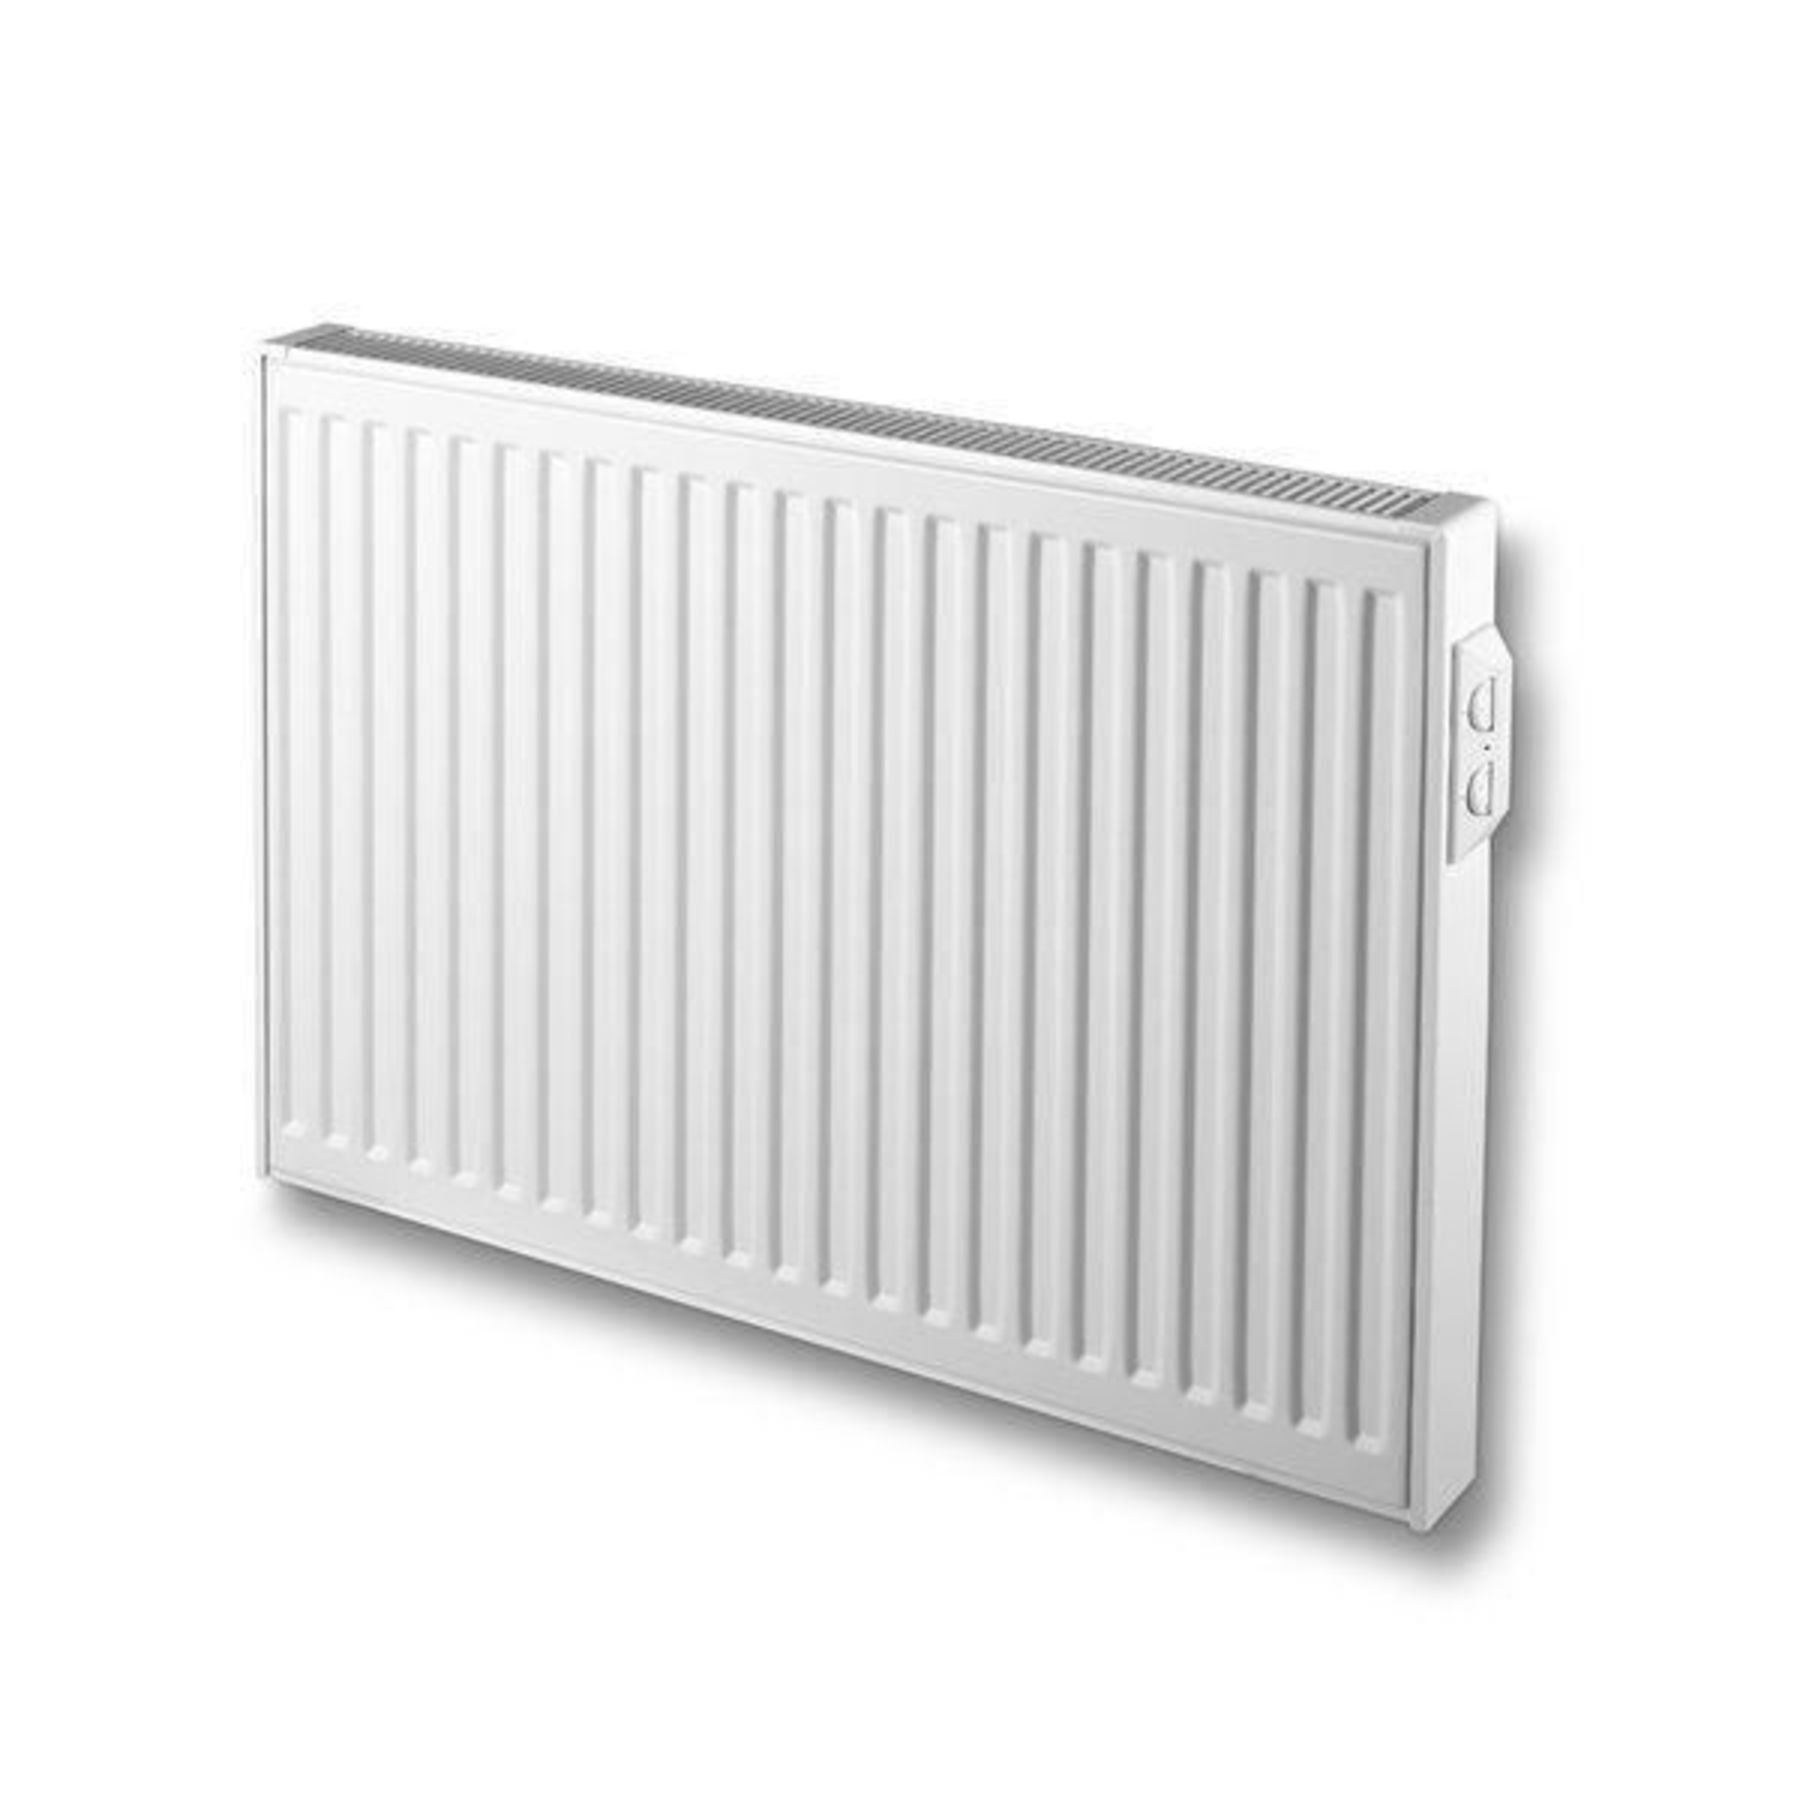 Vasco E panel geribt radiator elektrisch 1000x600mm 1250 watt wit